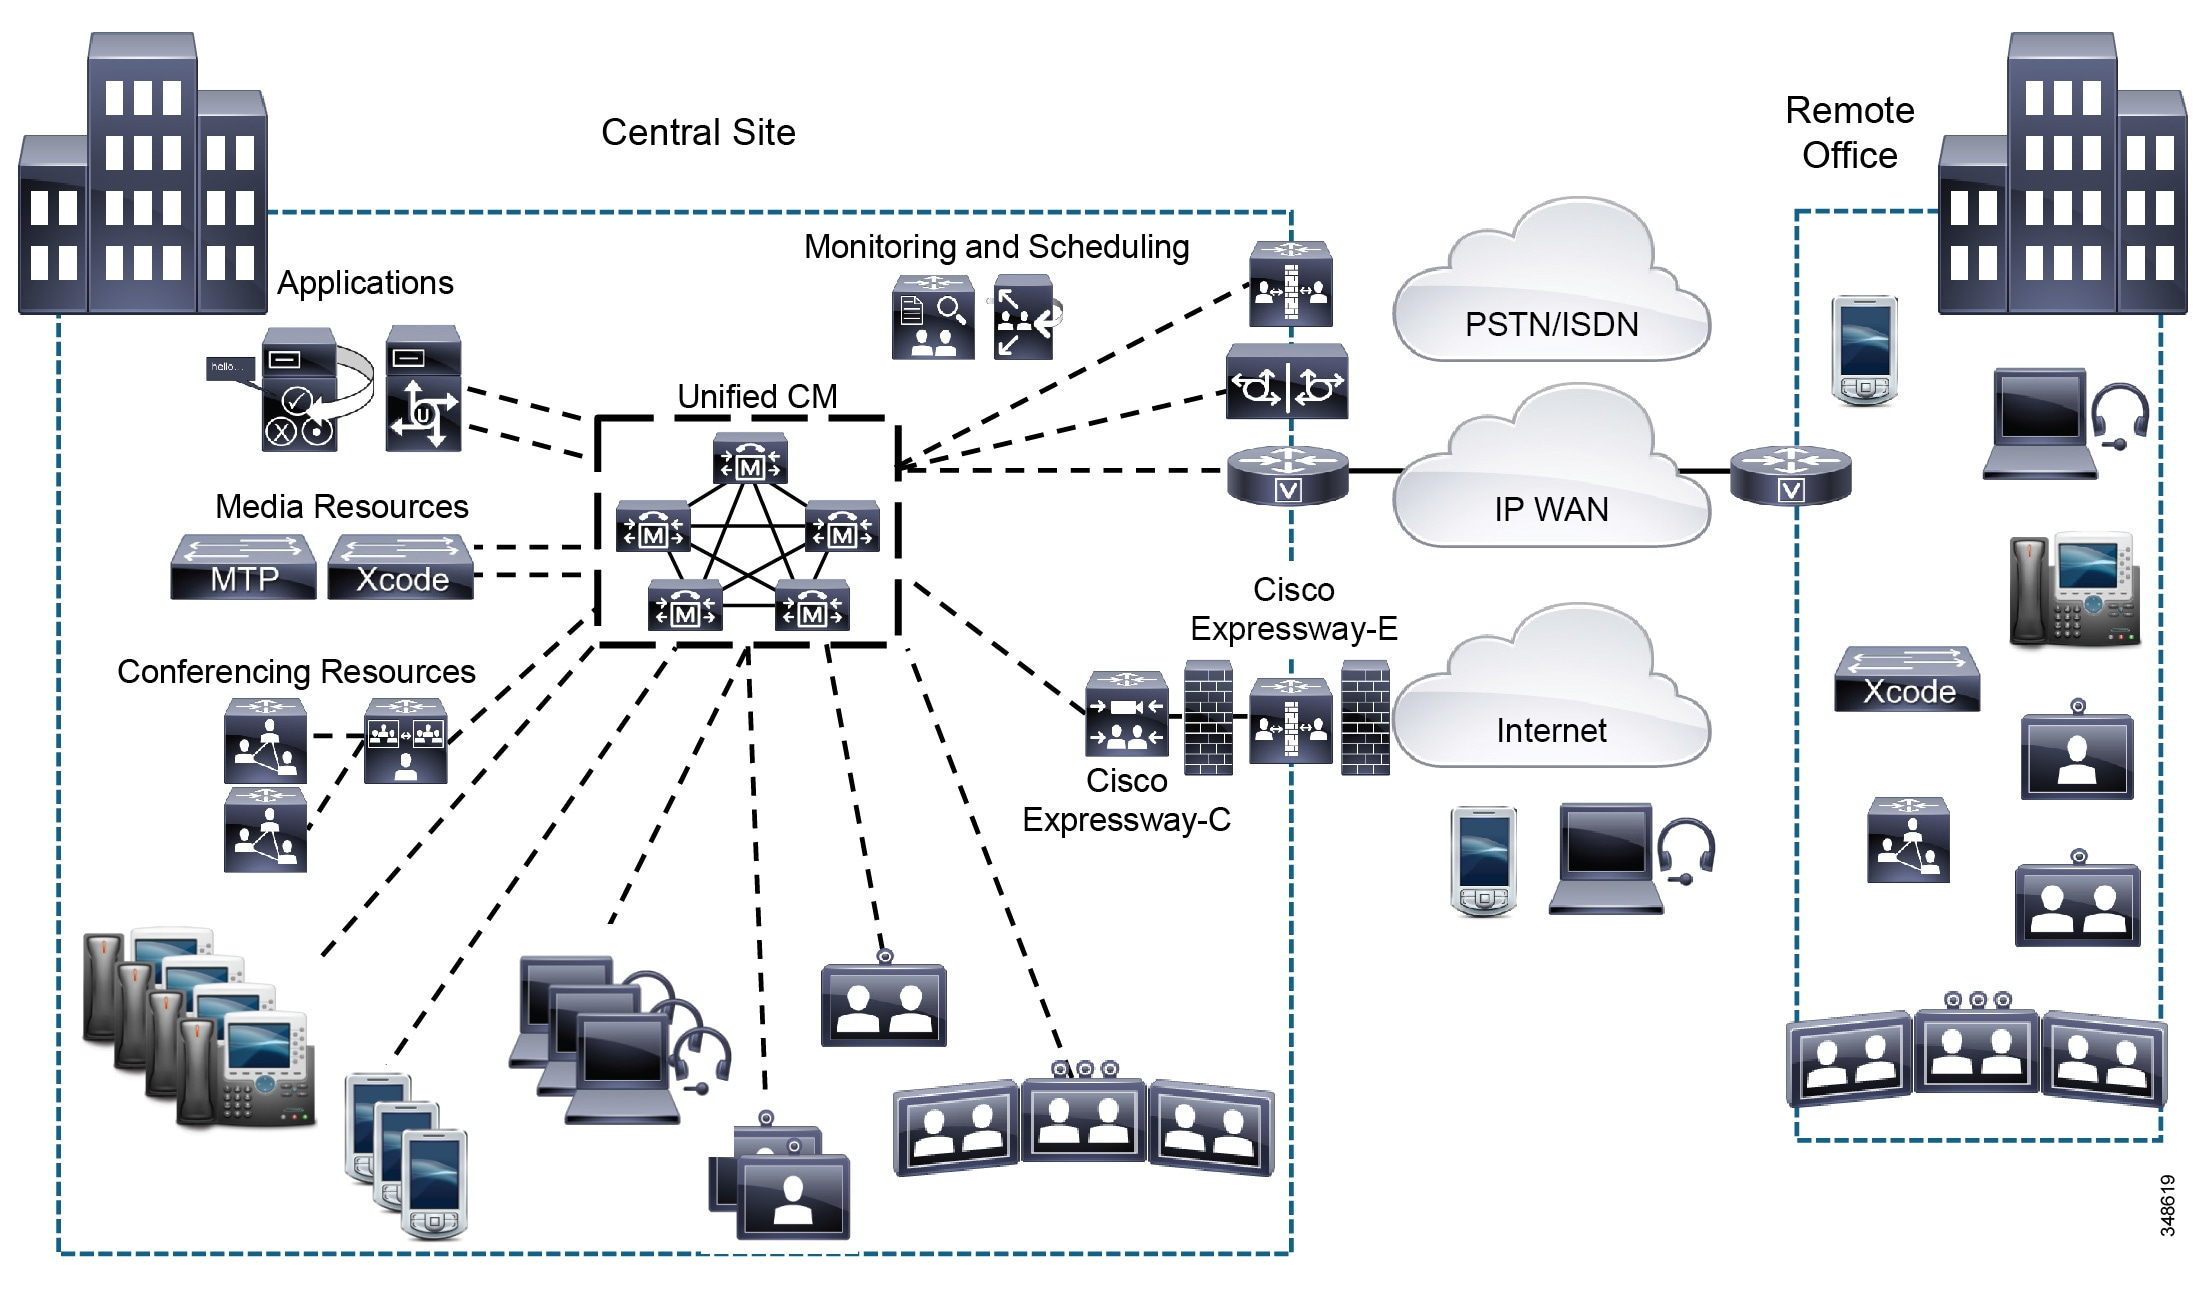 network design models Alibabacom offers 382 network design models products such as pvc, polyester, and metal.